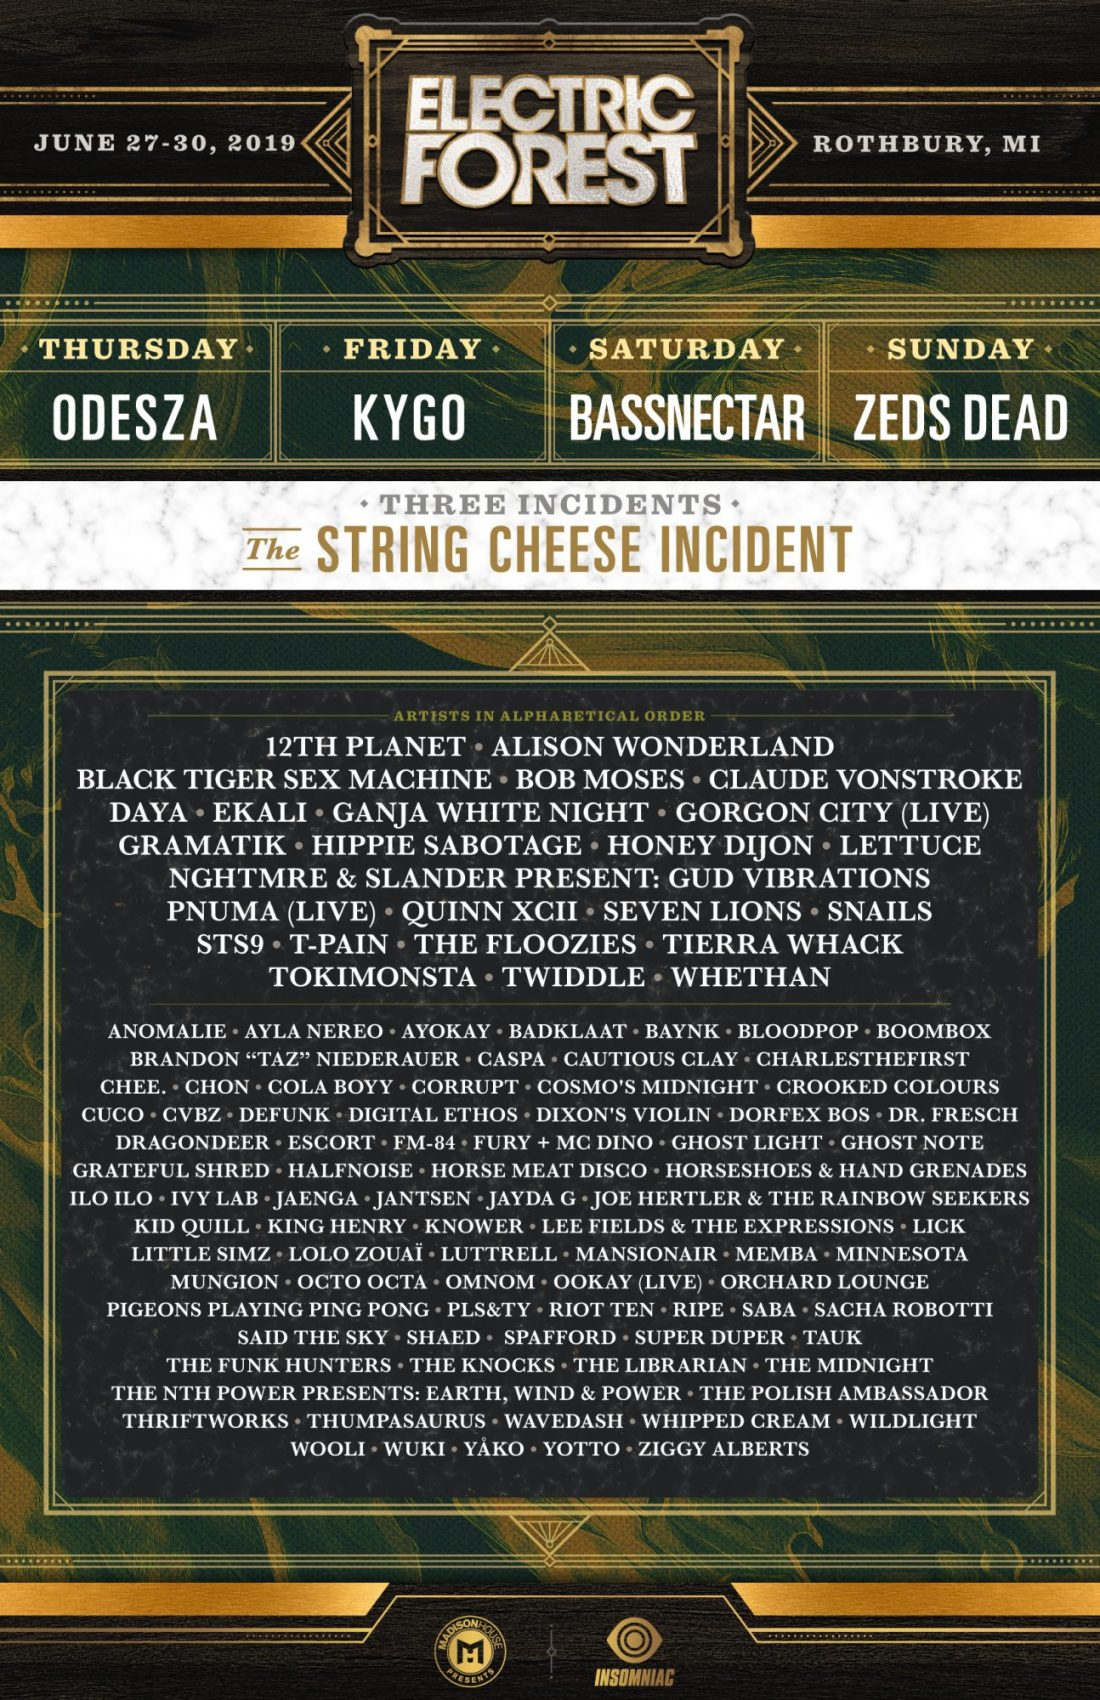 HQ IS PROUD TO PRESENT THE OFFICIAL LINEUP FOR ELECTRIC FOREST 2019